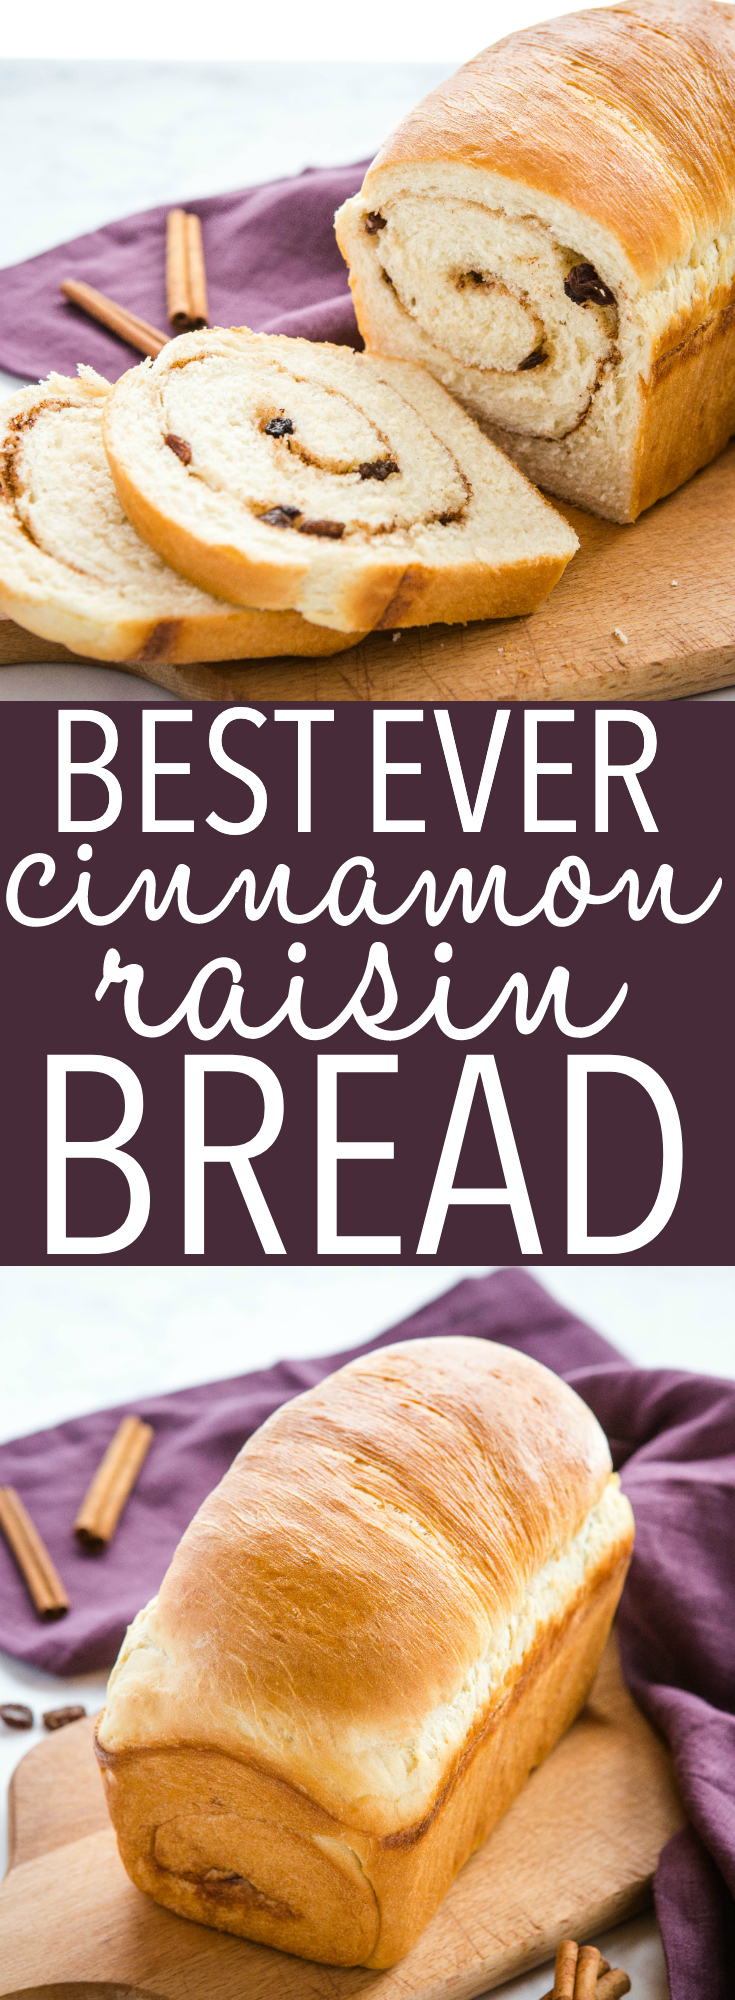 This Best Ever Cinnamon Raisin Bread is the perfect soft, sweet bread recipe with a sweet cinnamon swirl and juicy raisins! Makes a delicious snack or breakfast! Recipe from thebusybaker.ca! #cinnamon #raisin #bread #toast #homemade #baking #cinnamonraisin #sweet #dough #homemadebread #baker #homesteading #breakfast #snack via @busybakerblog